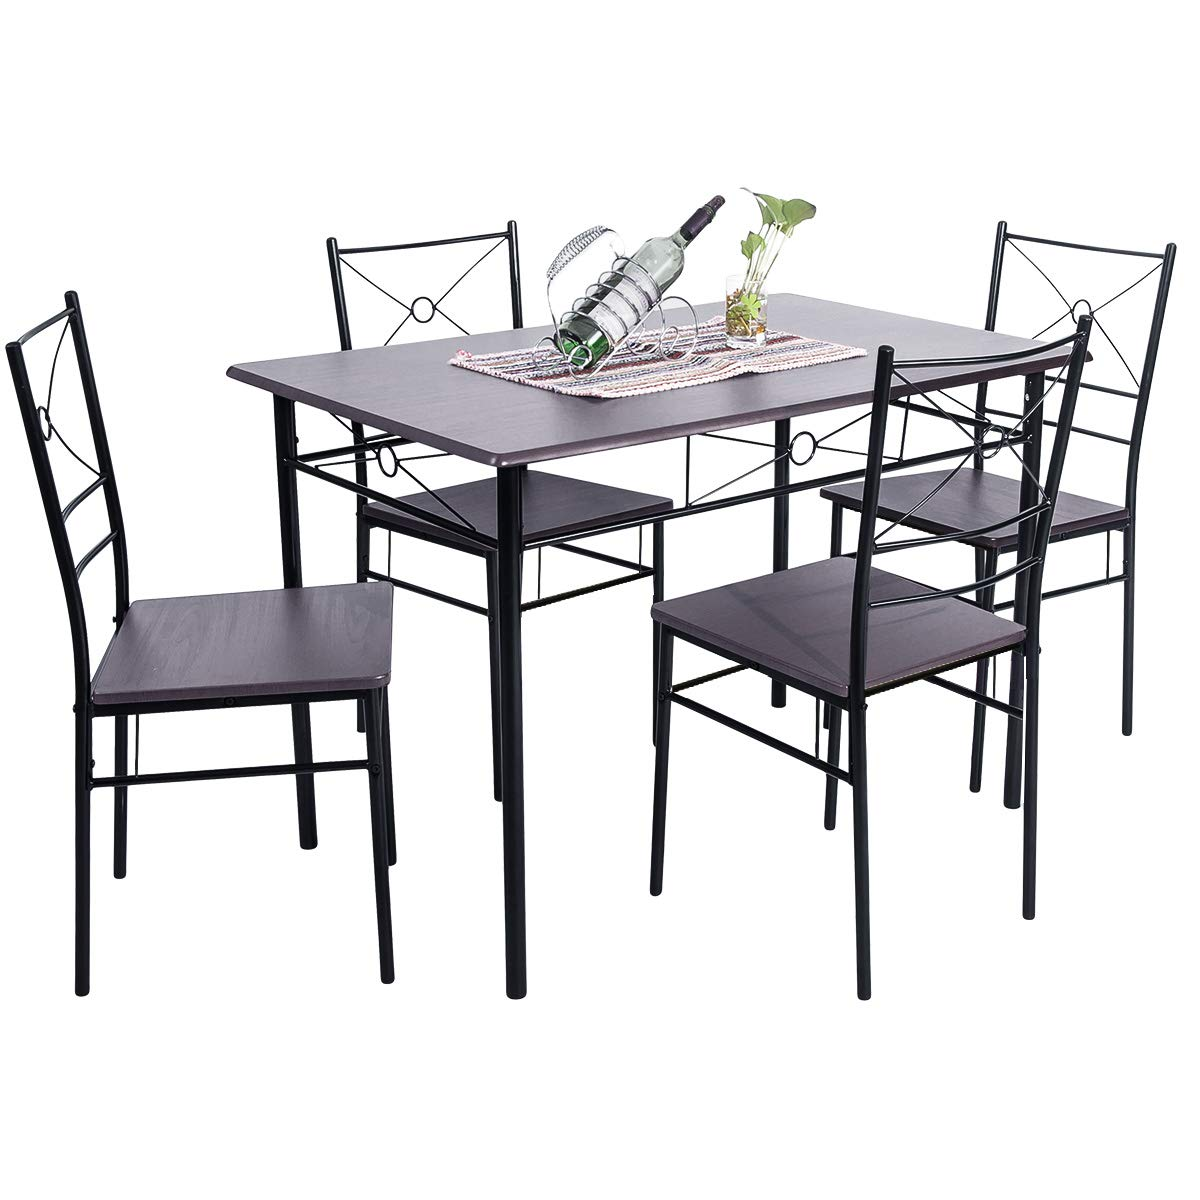 BEIZ & PENZ 5-Piece Dining Table Set Vintage Wood Top Home Kitchen Table with 4 Chairs Wood and Metal Dining Room Breakfast Modern Furniture (Espresso)